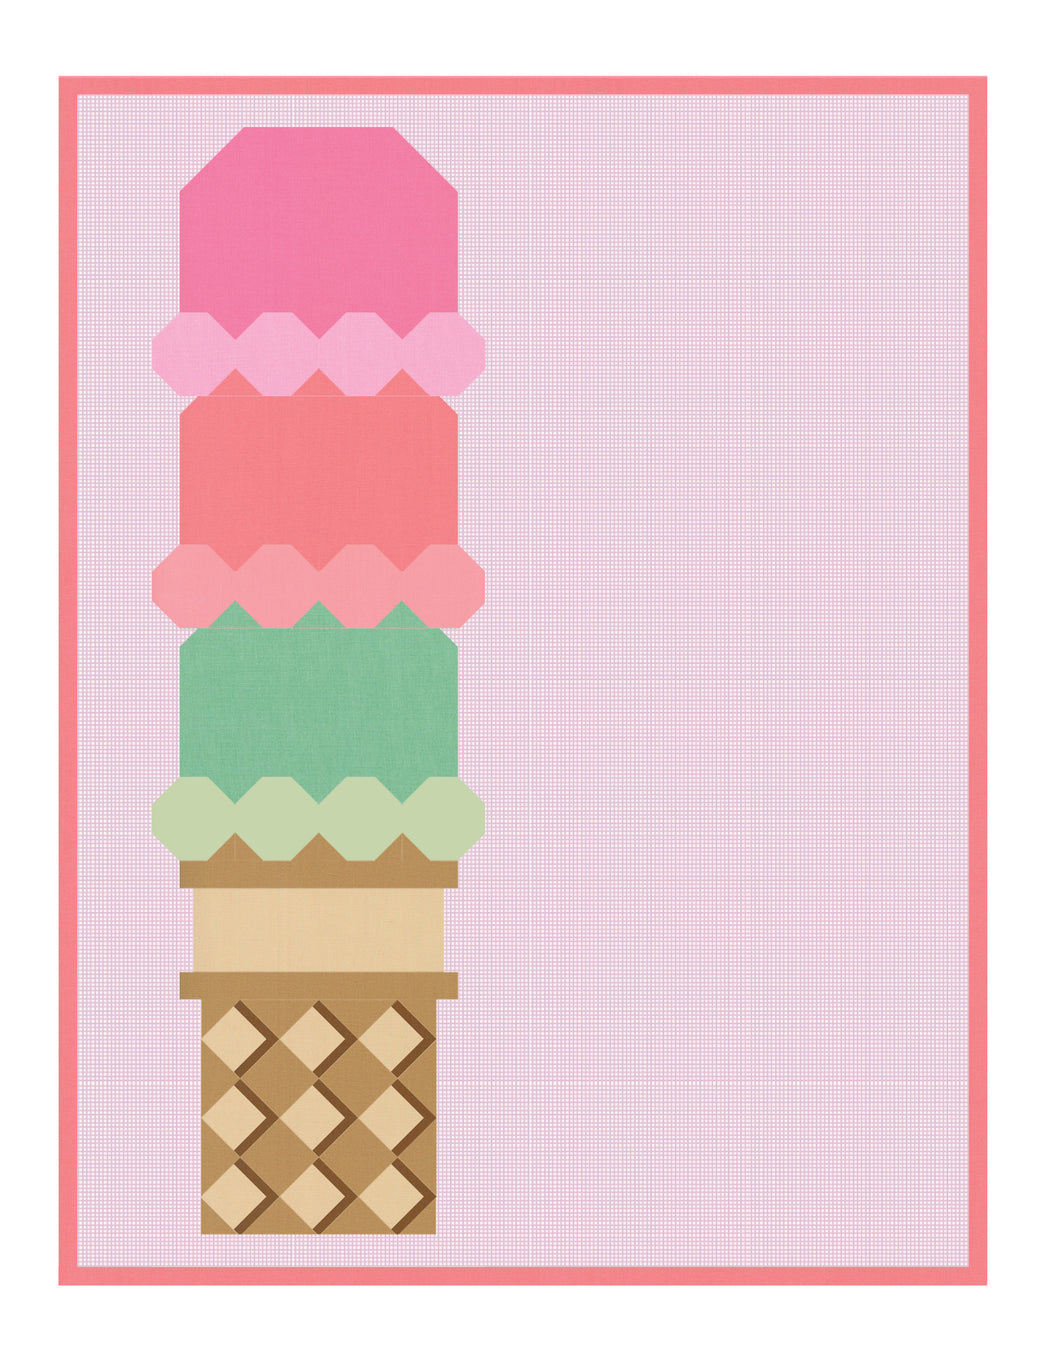 Triple Scoop - PDF Pattern